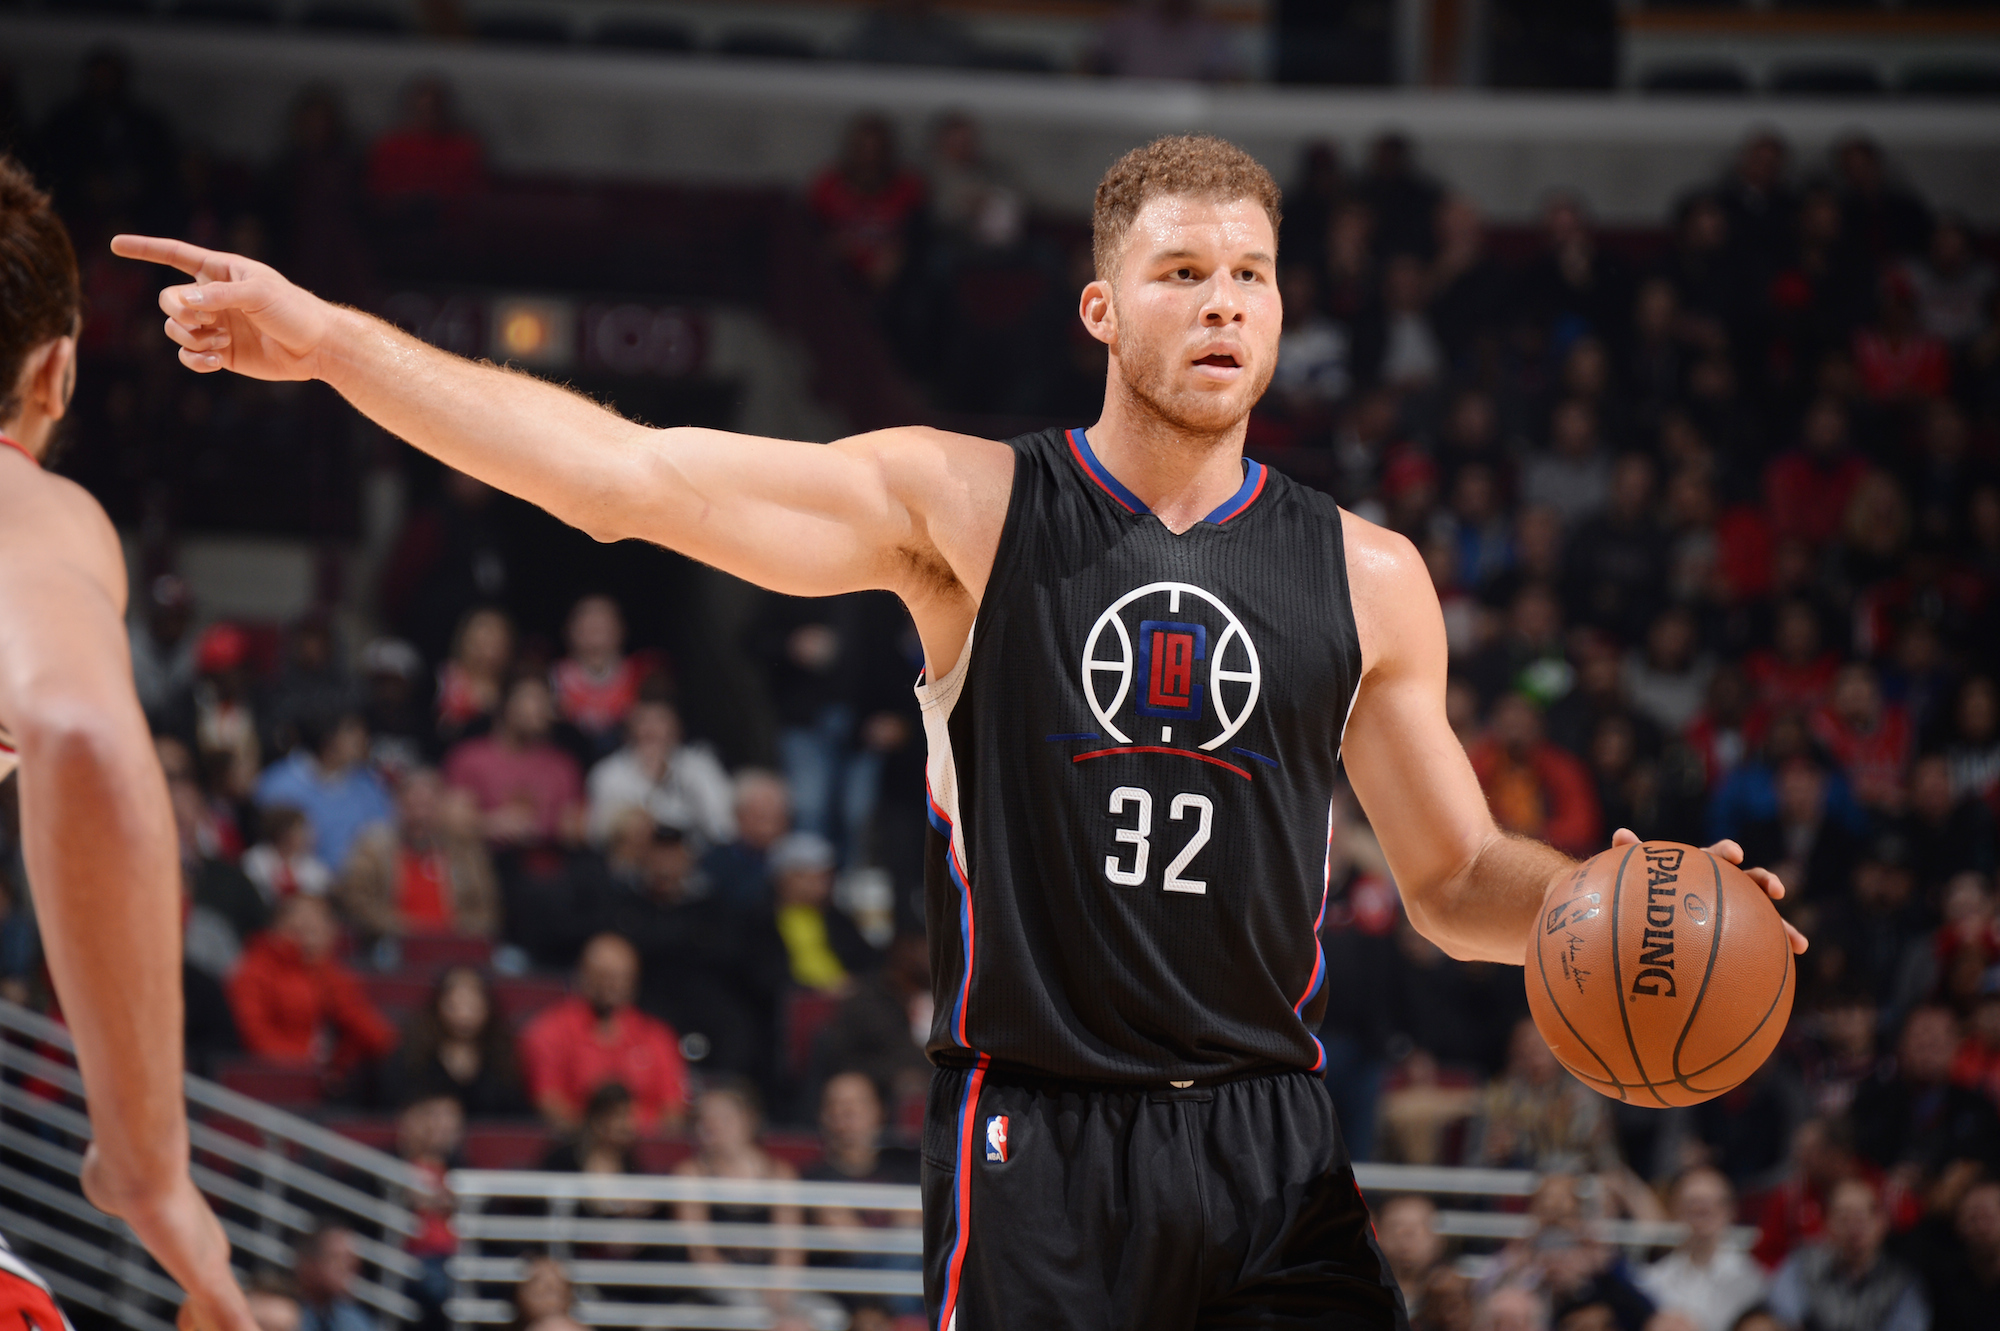 La clippers the impact of blake griffins surgery on the team foxsports com - La Clippers The Impact Of Blake Griffins Surgery On The Team Foxsports Com 50